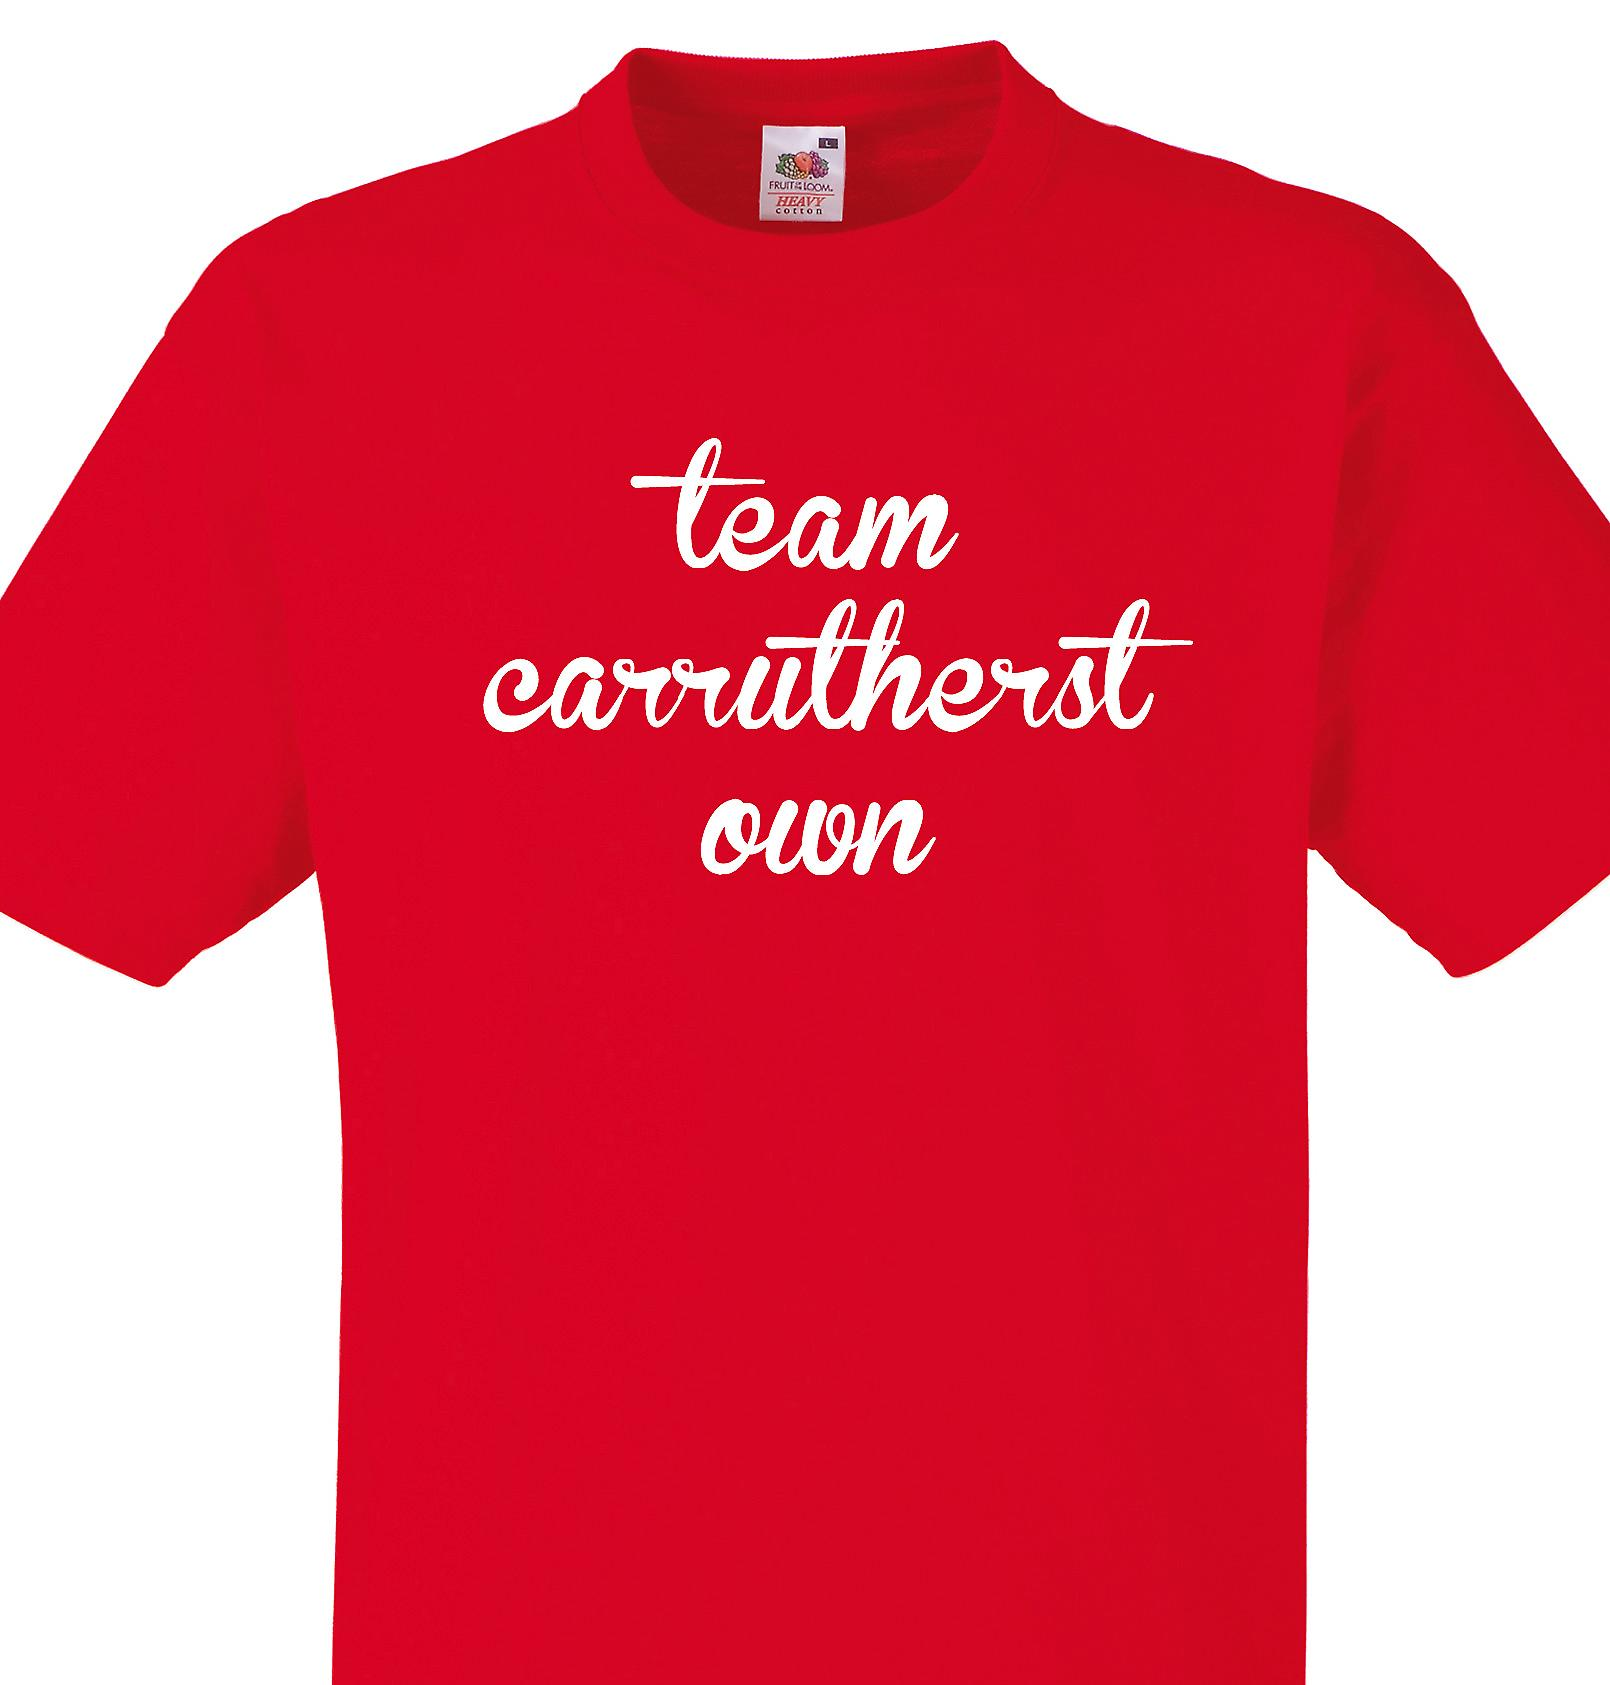 Team Carrutherstown Red T shirt